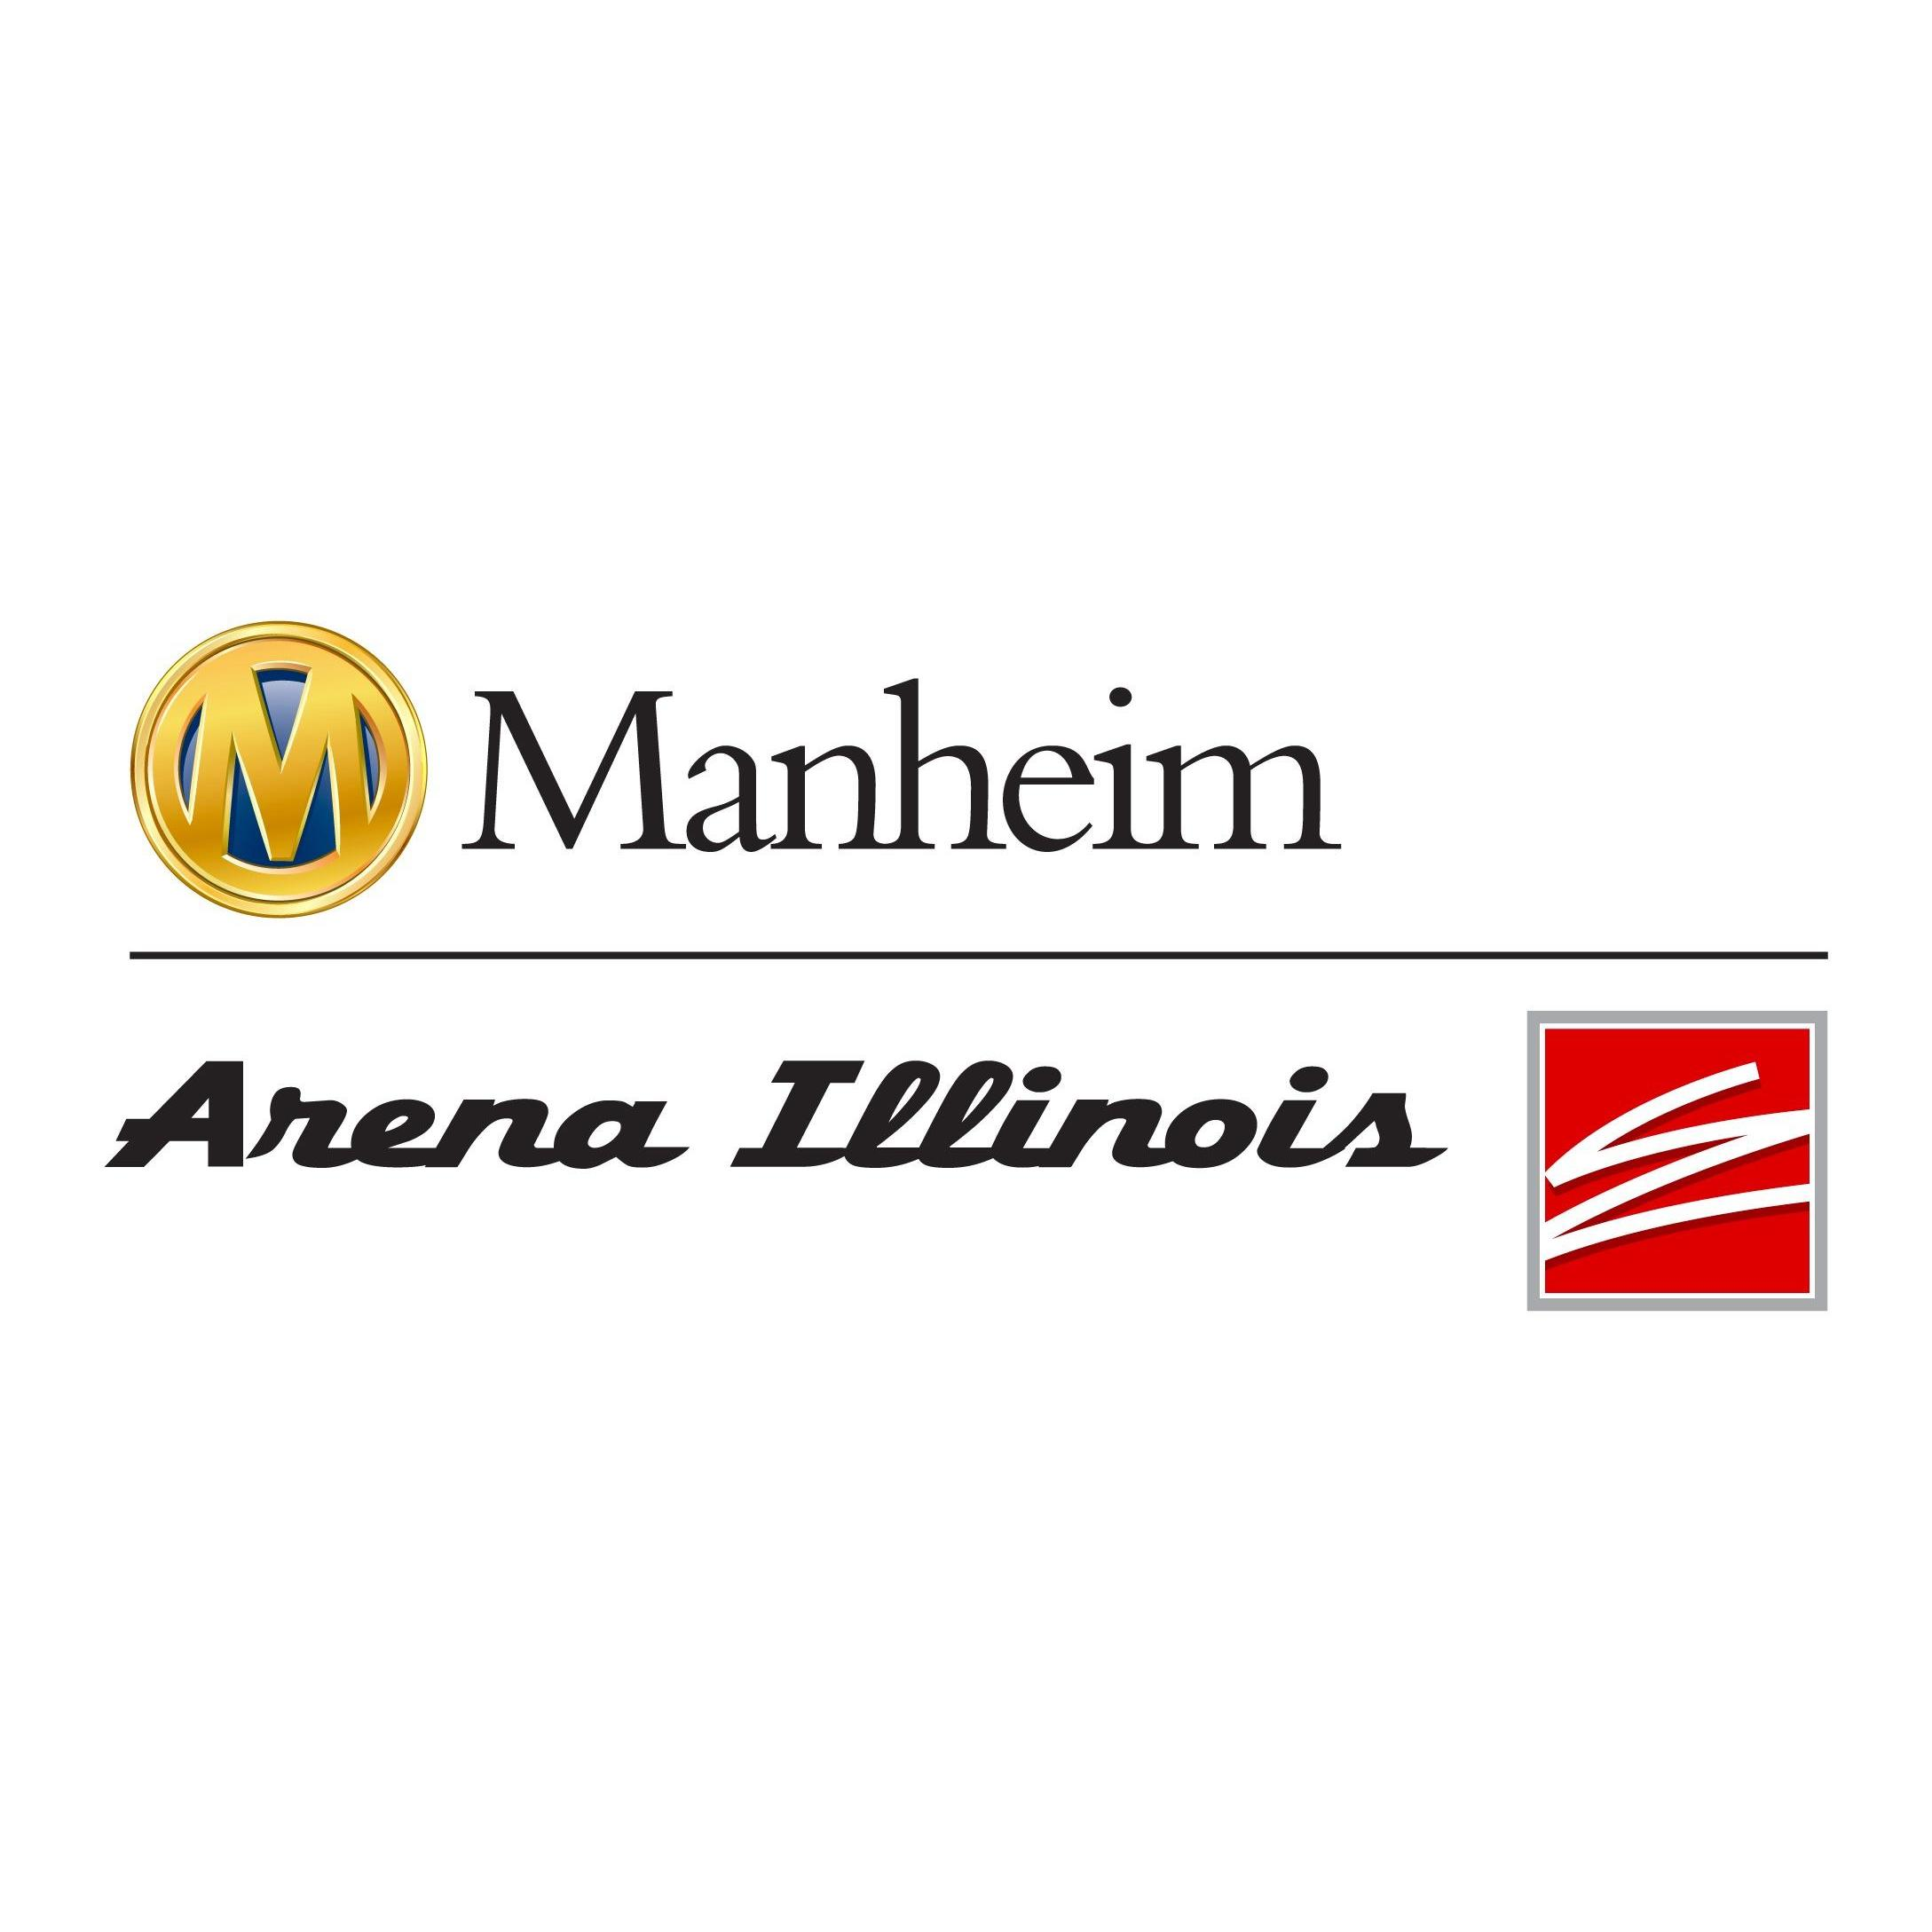 Manheim Arena Illinois